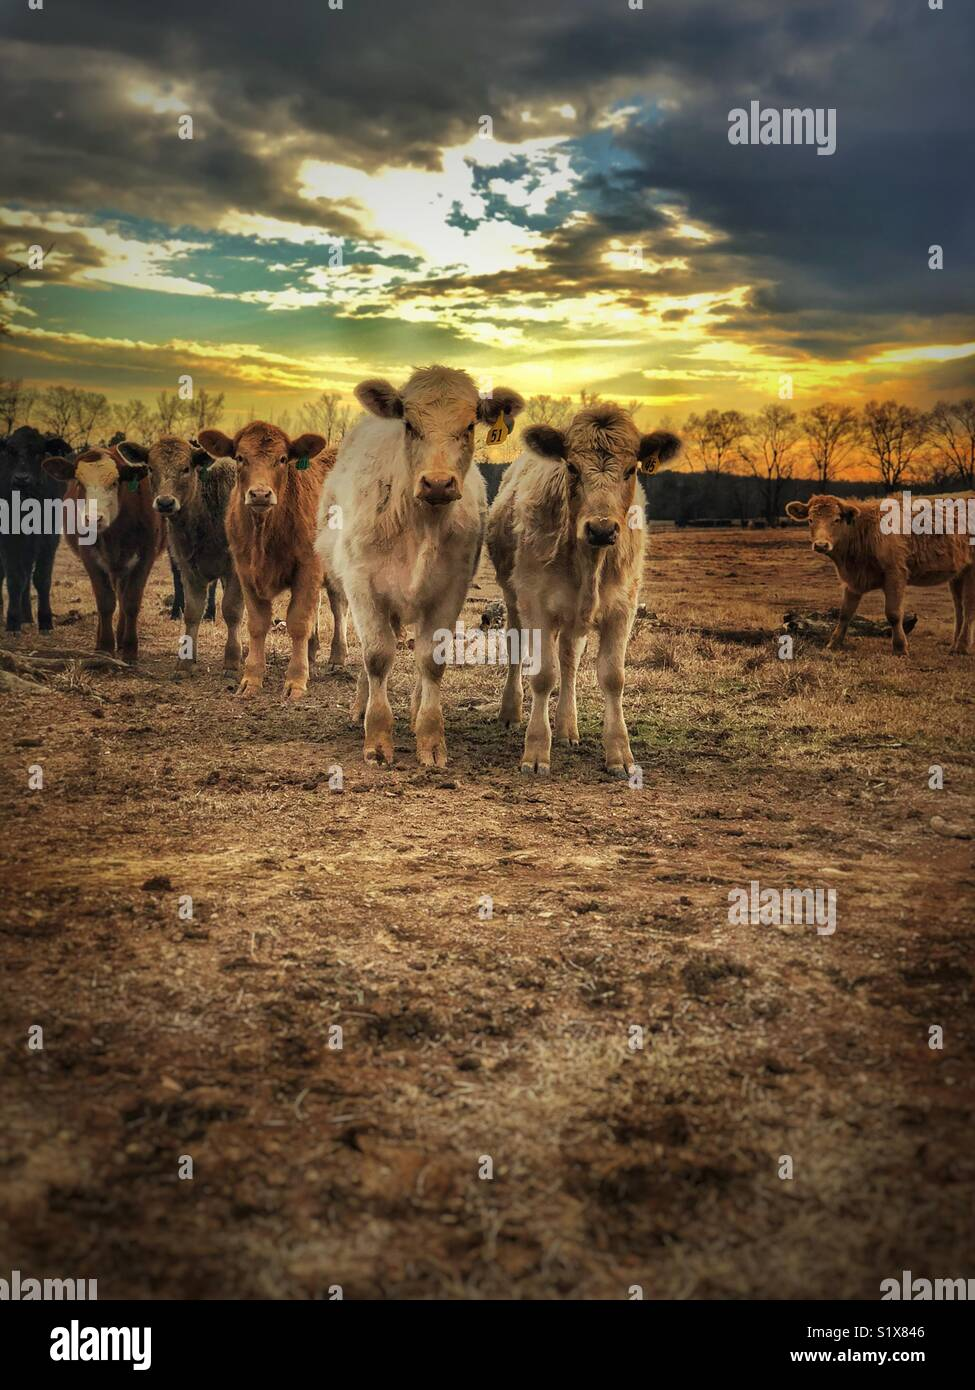 Curious cows - Stock Image